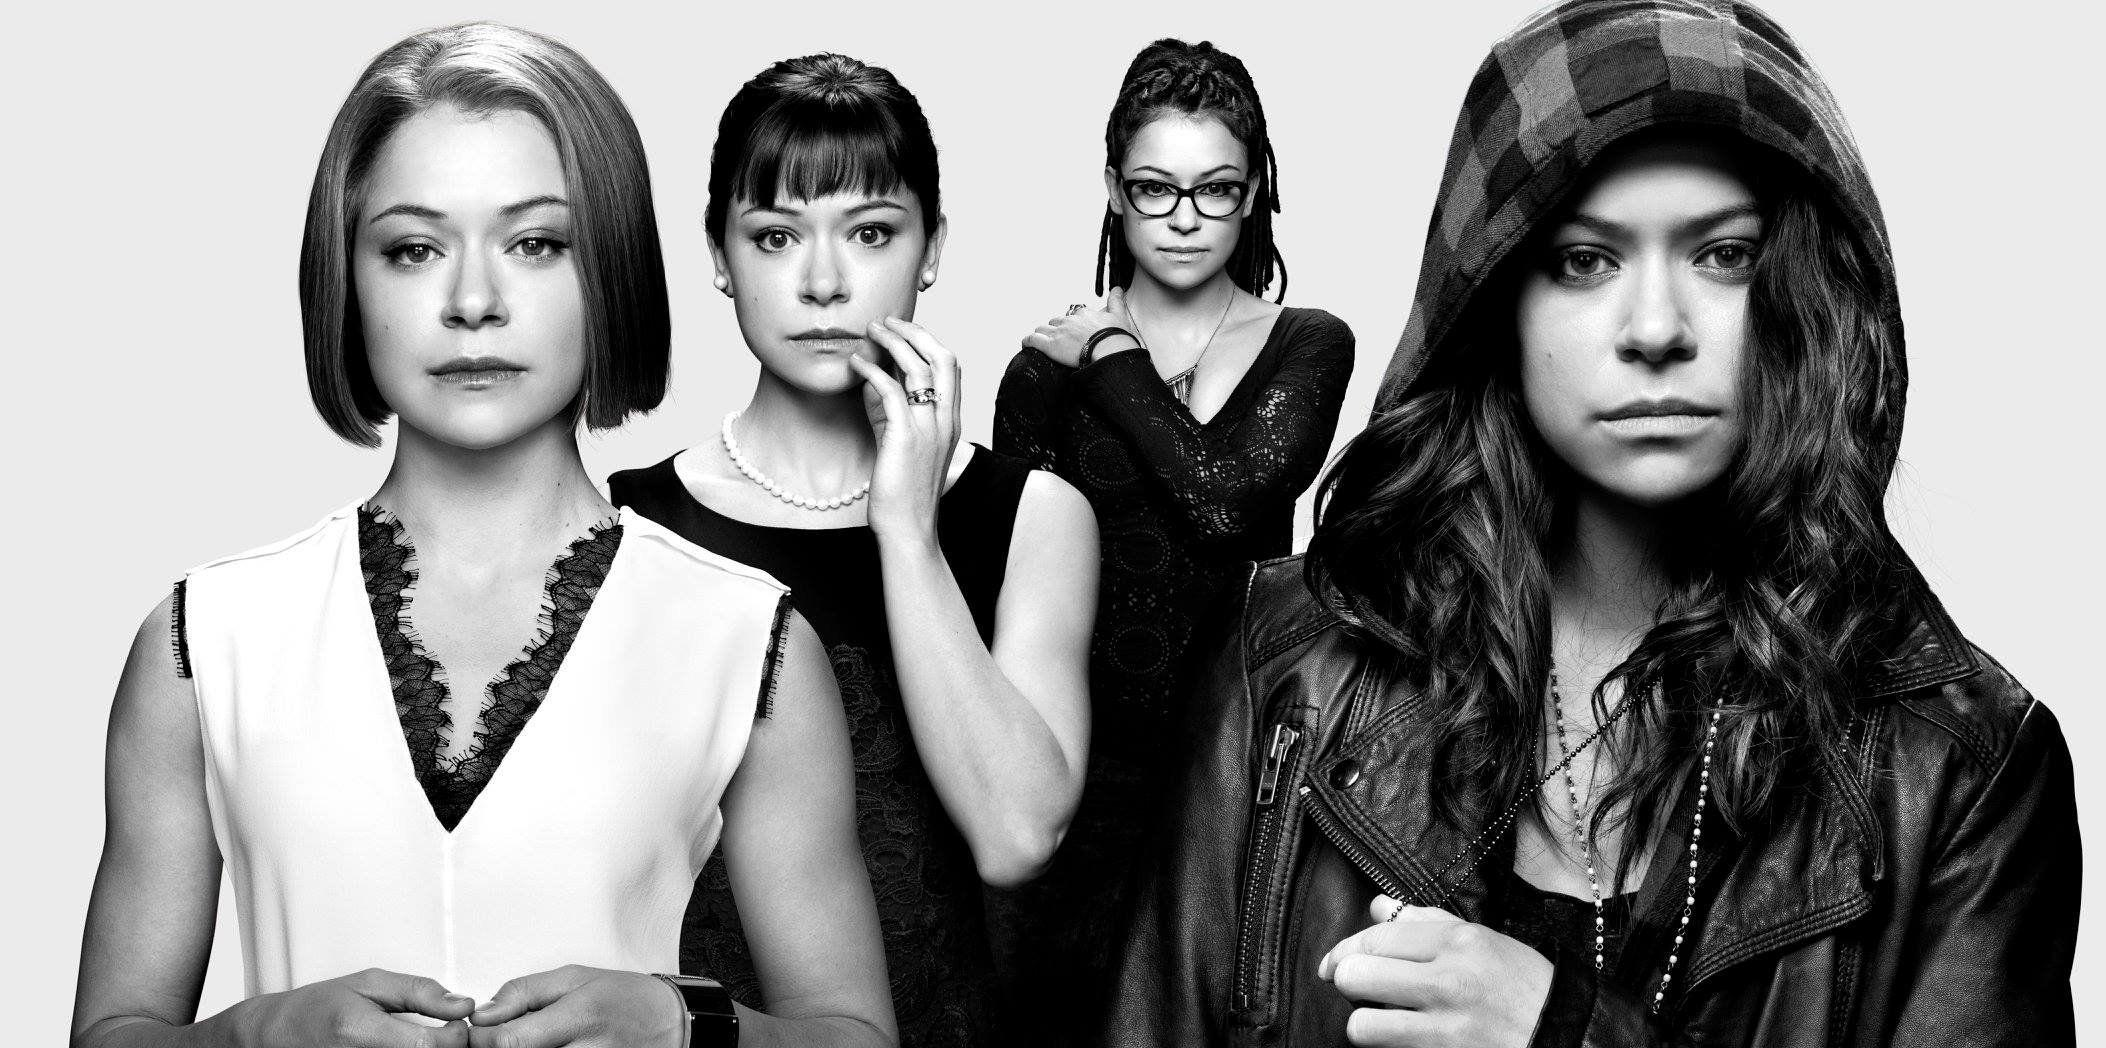 Orphan Black Wallpaper - WallpaperSafari